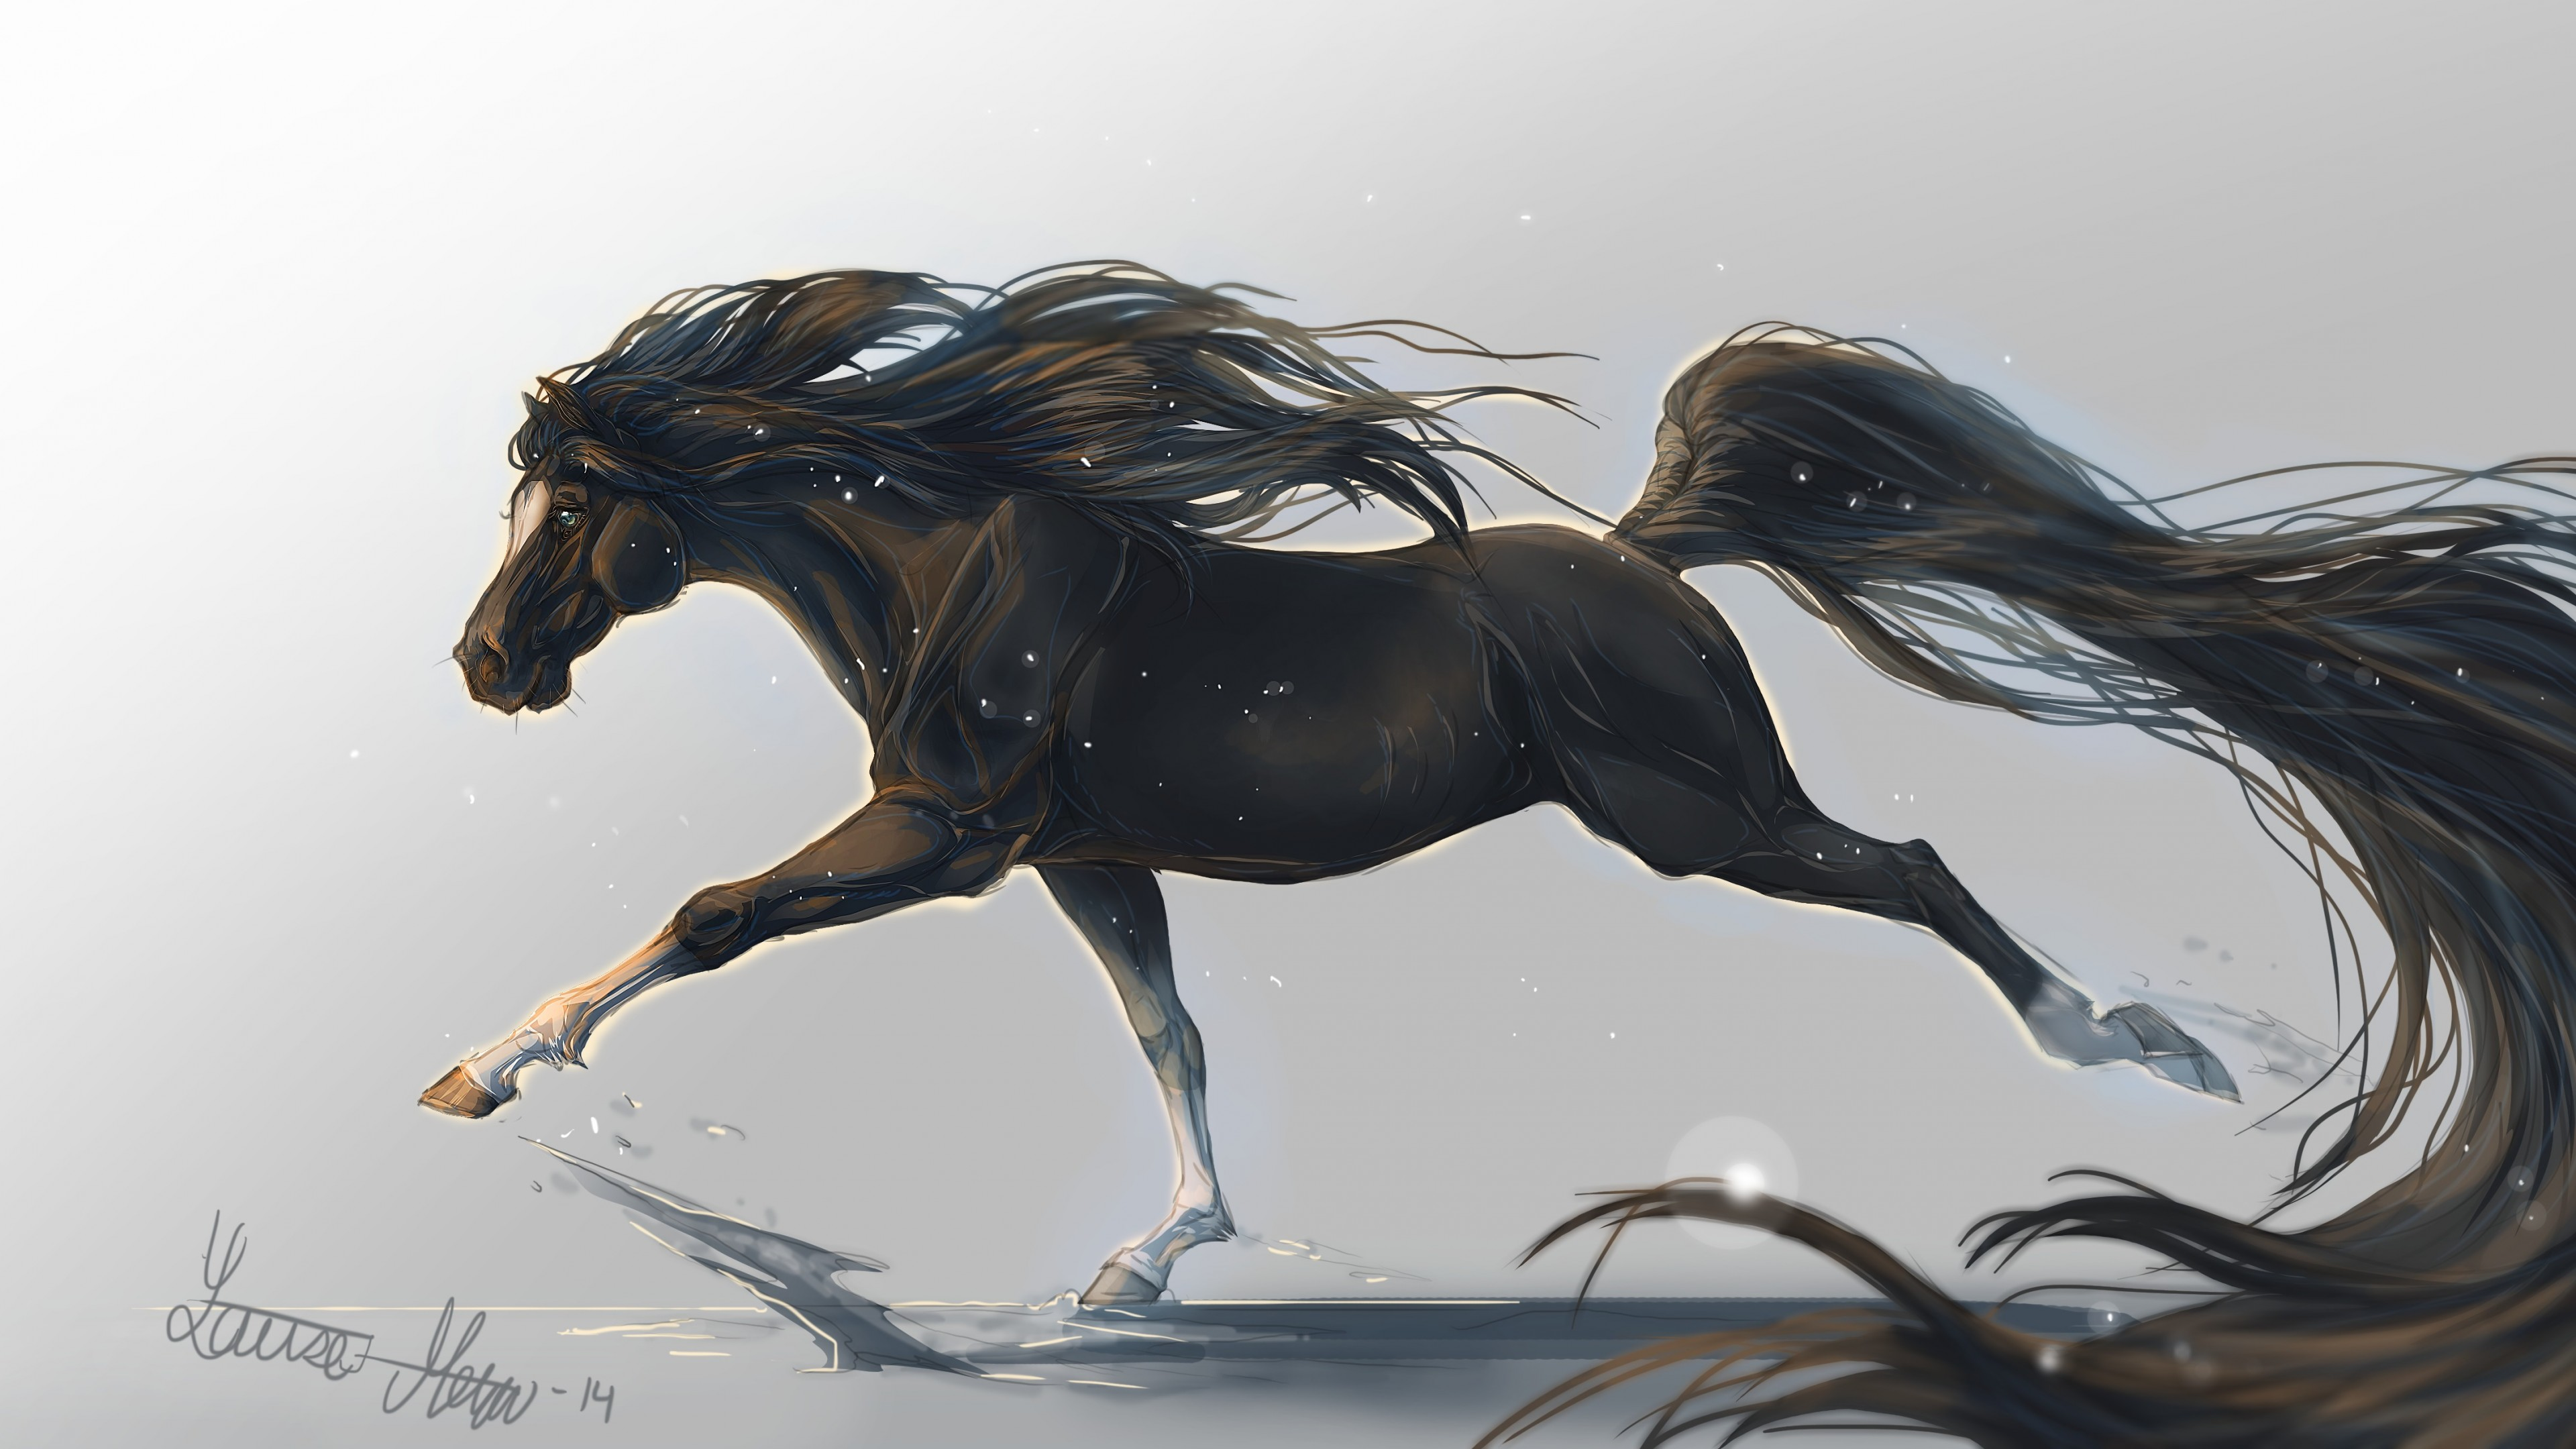 Black White Horse Art 3840x2160 Wallpaper Teahub Io